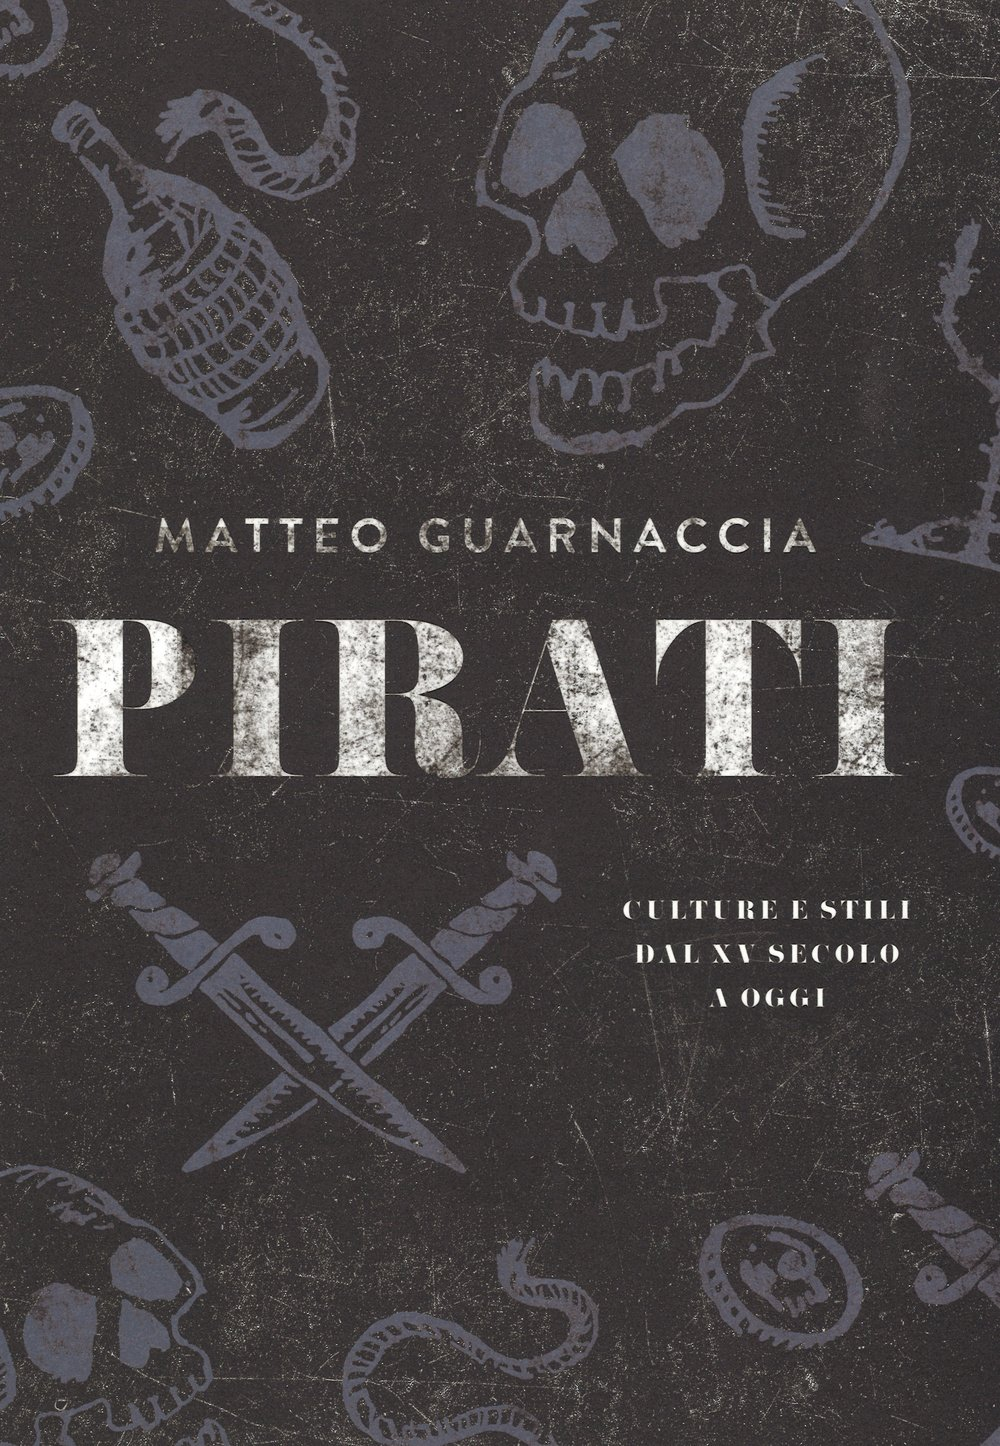 Matteo Guarnaccia's book cover